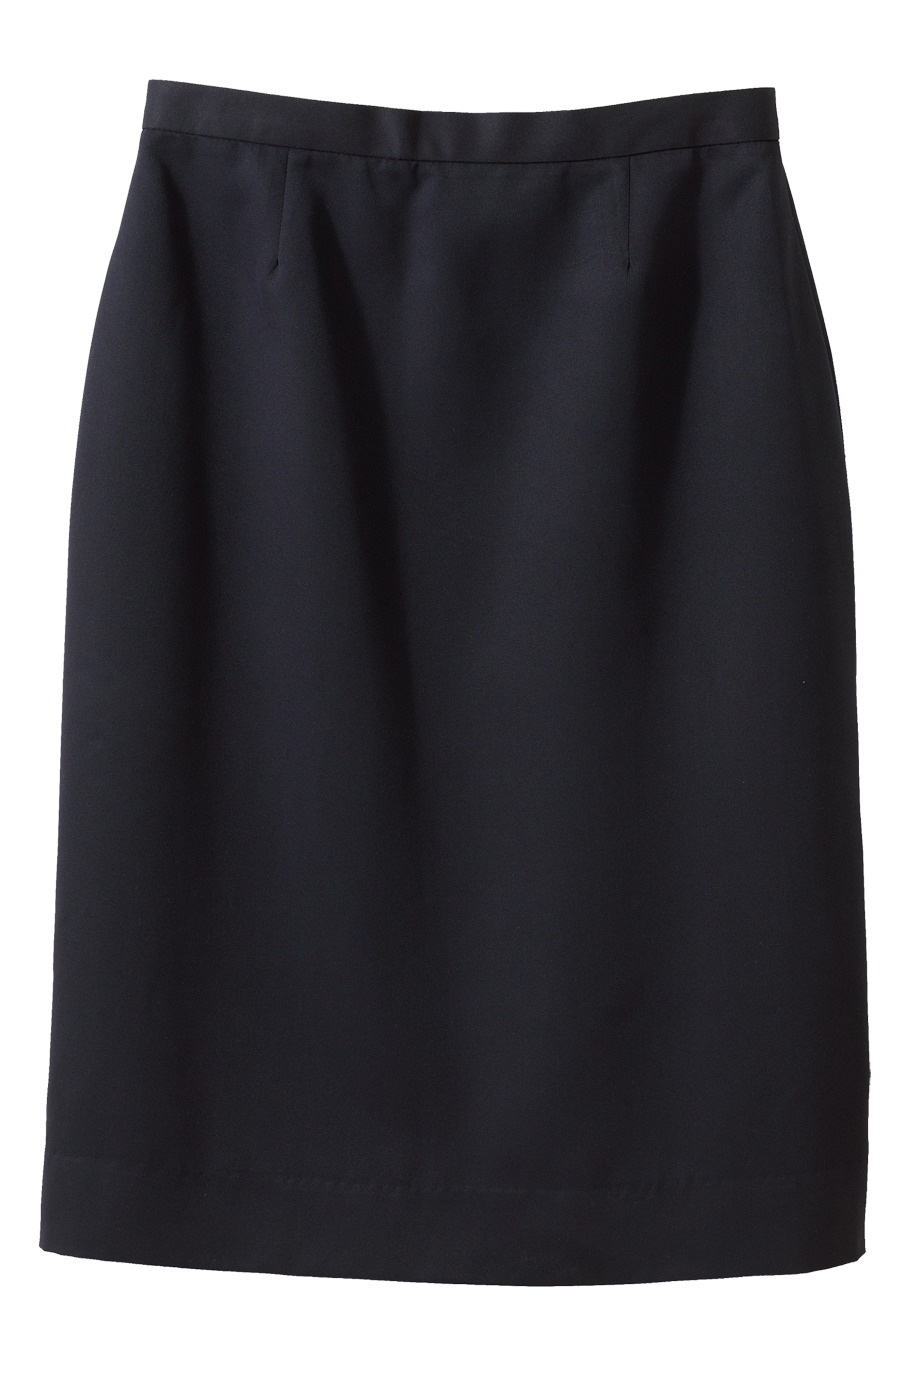 Edwards Garment 9792 - Women's Microfiber Skirt